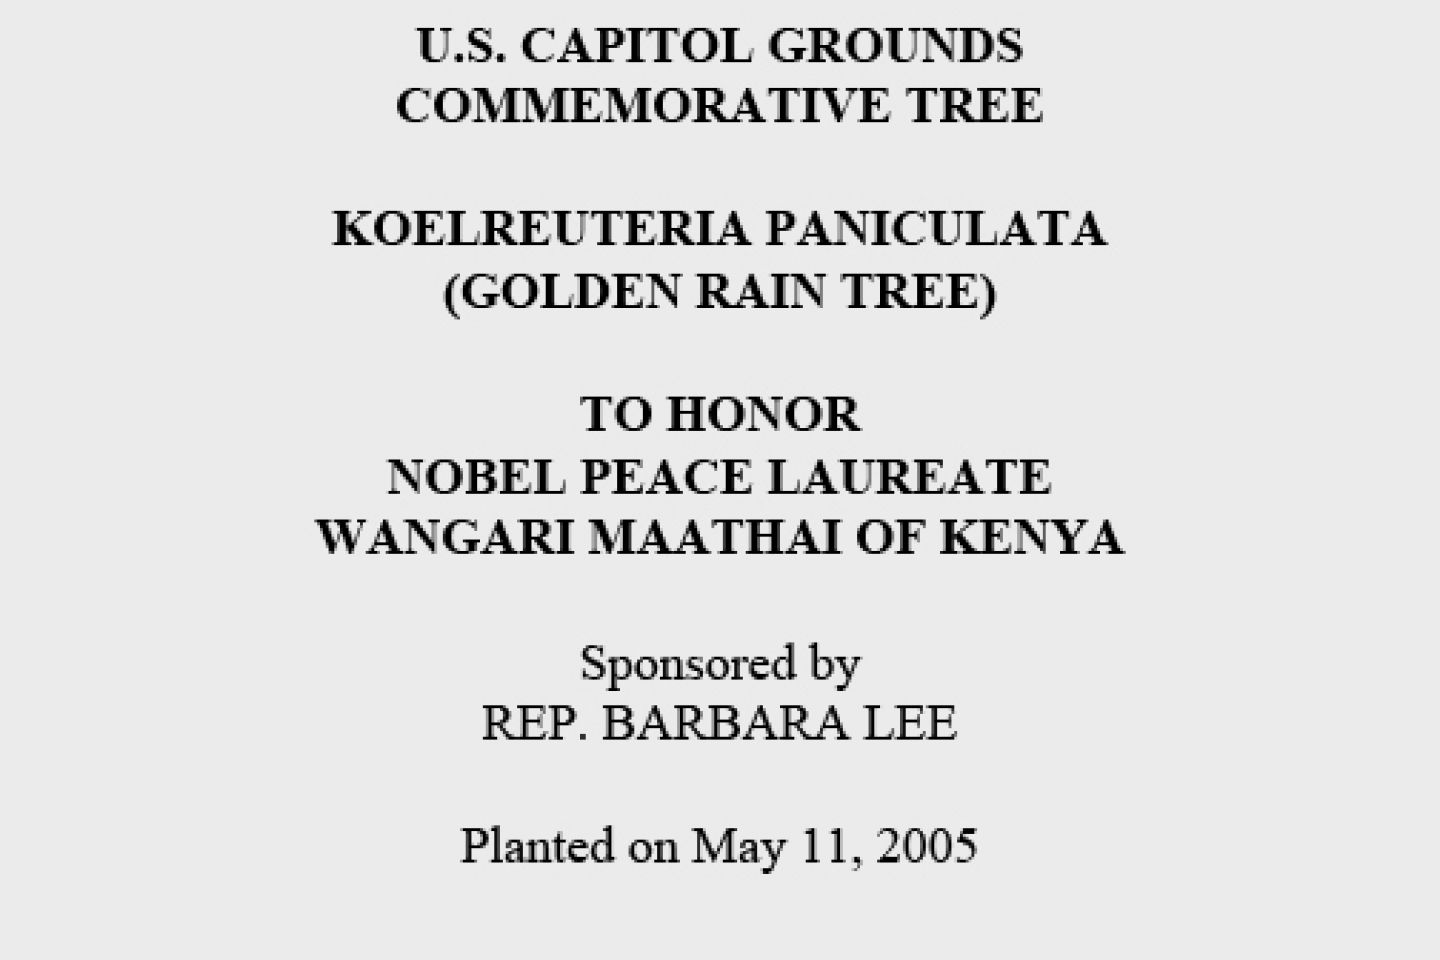 U.S. Capitol Grounds Commemorative Tree  Koelreuteria paniculata (Golden Rain Tree)  To Honor Nobel Peace Laureate Wangari Maathai of Kenya  Sponsored by REP. BARBARA LEE  Planted on May 11, 2005